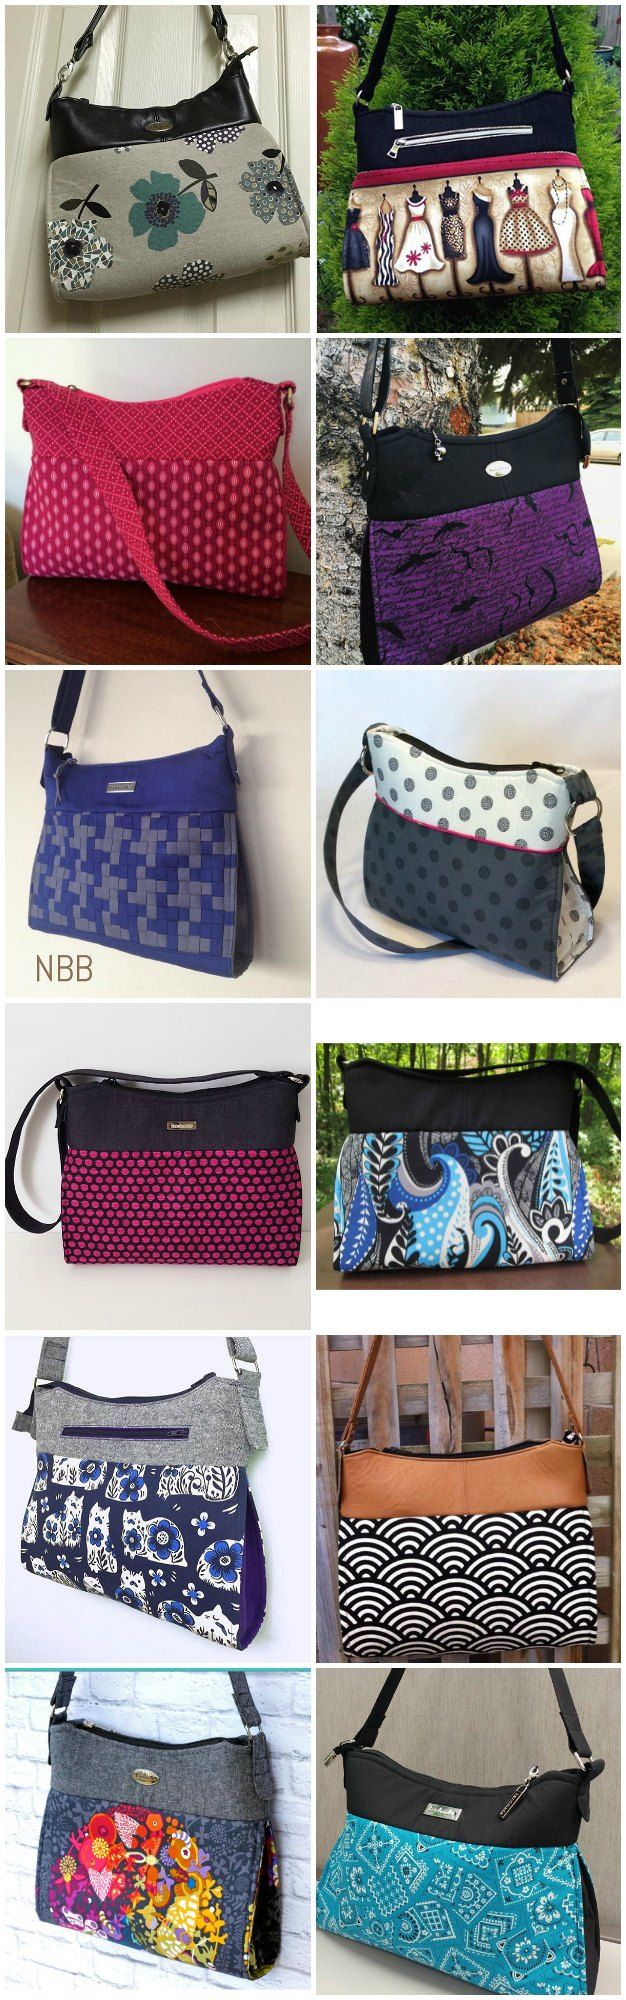 Gabby Purse Sewing Pattern. The Perfect Everyday Main Handbag Sewing  Pattern. Look At All